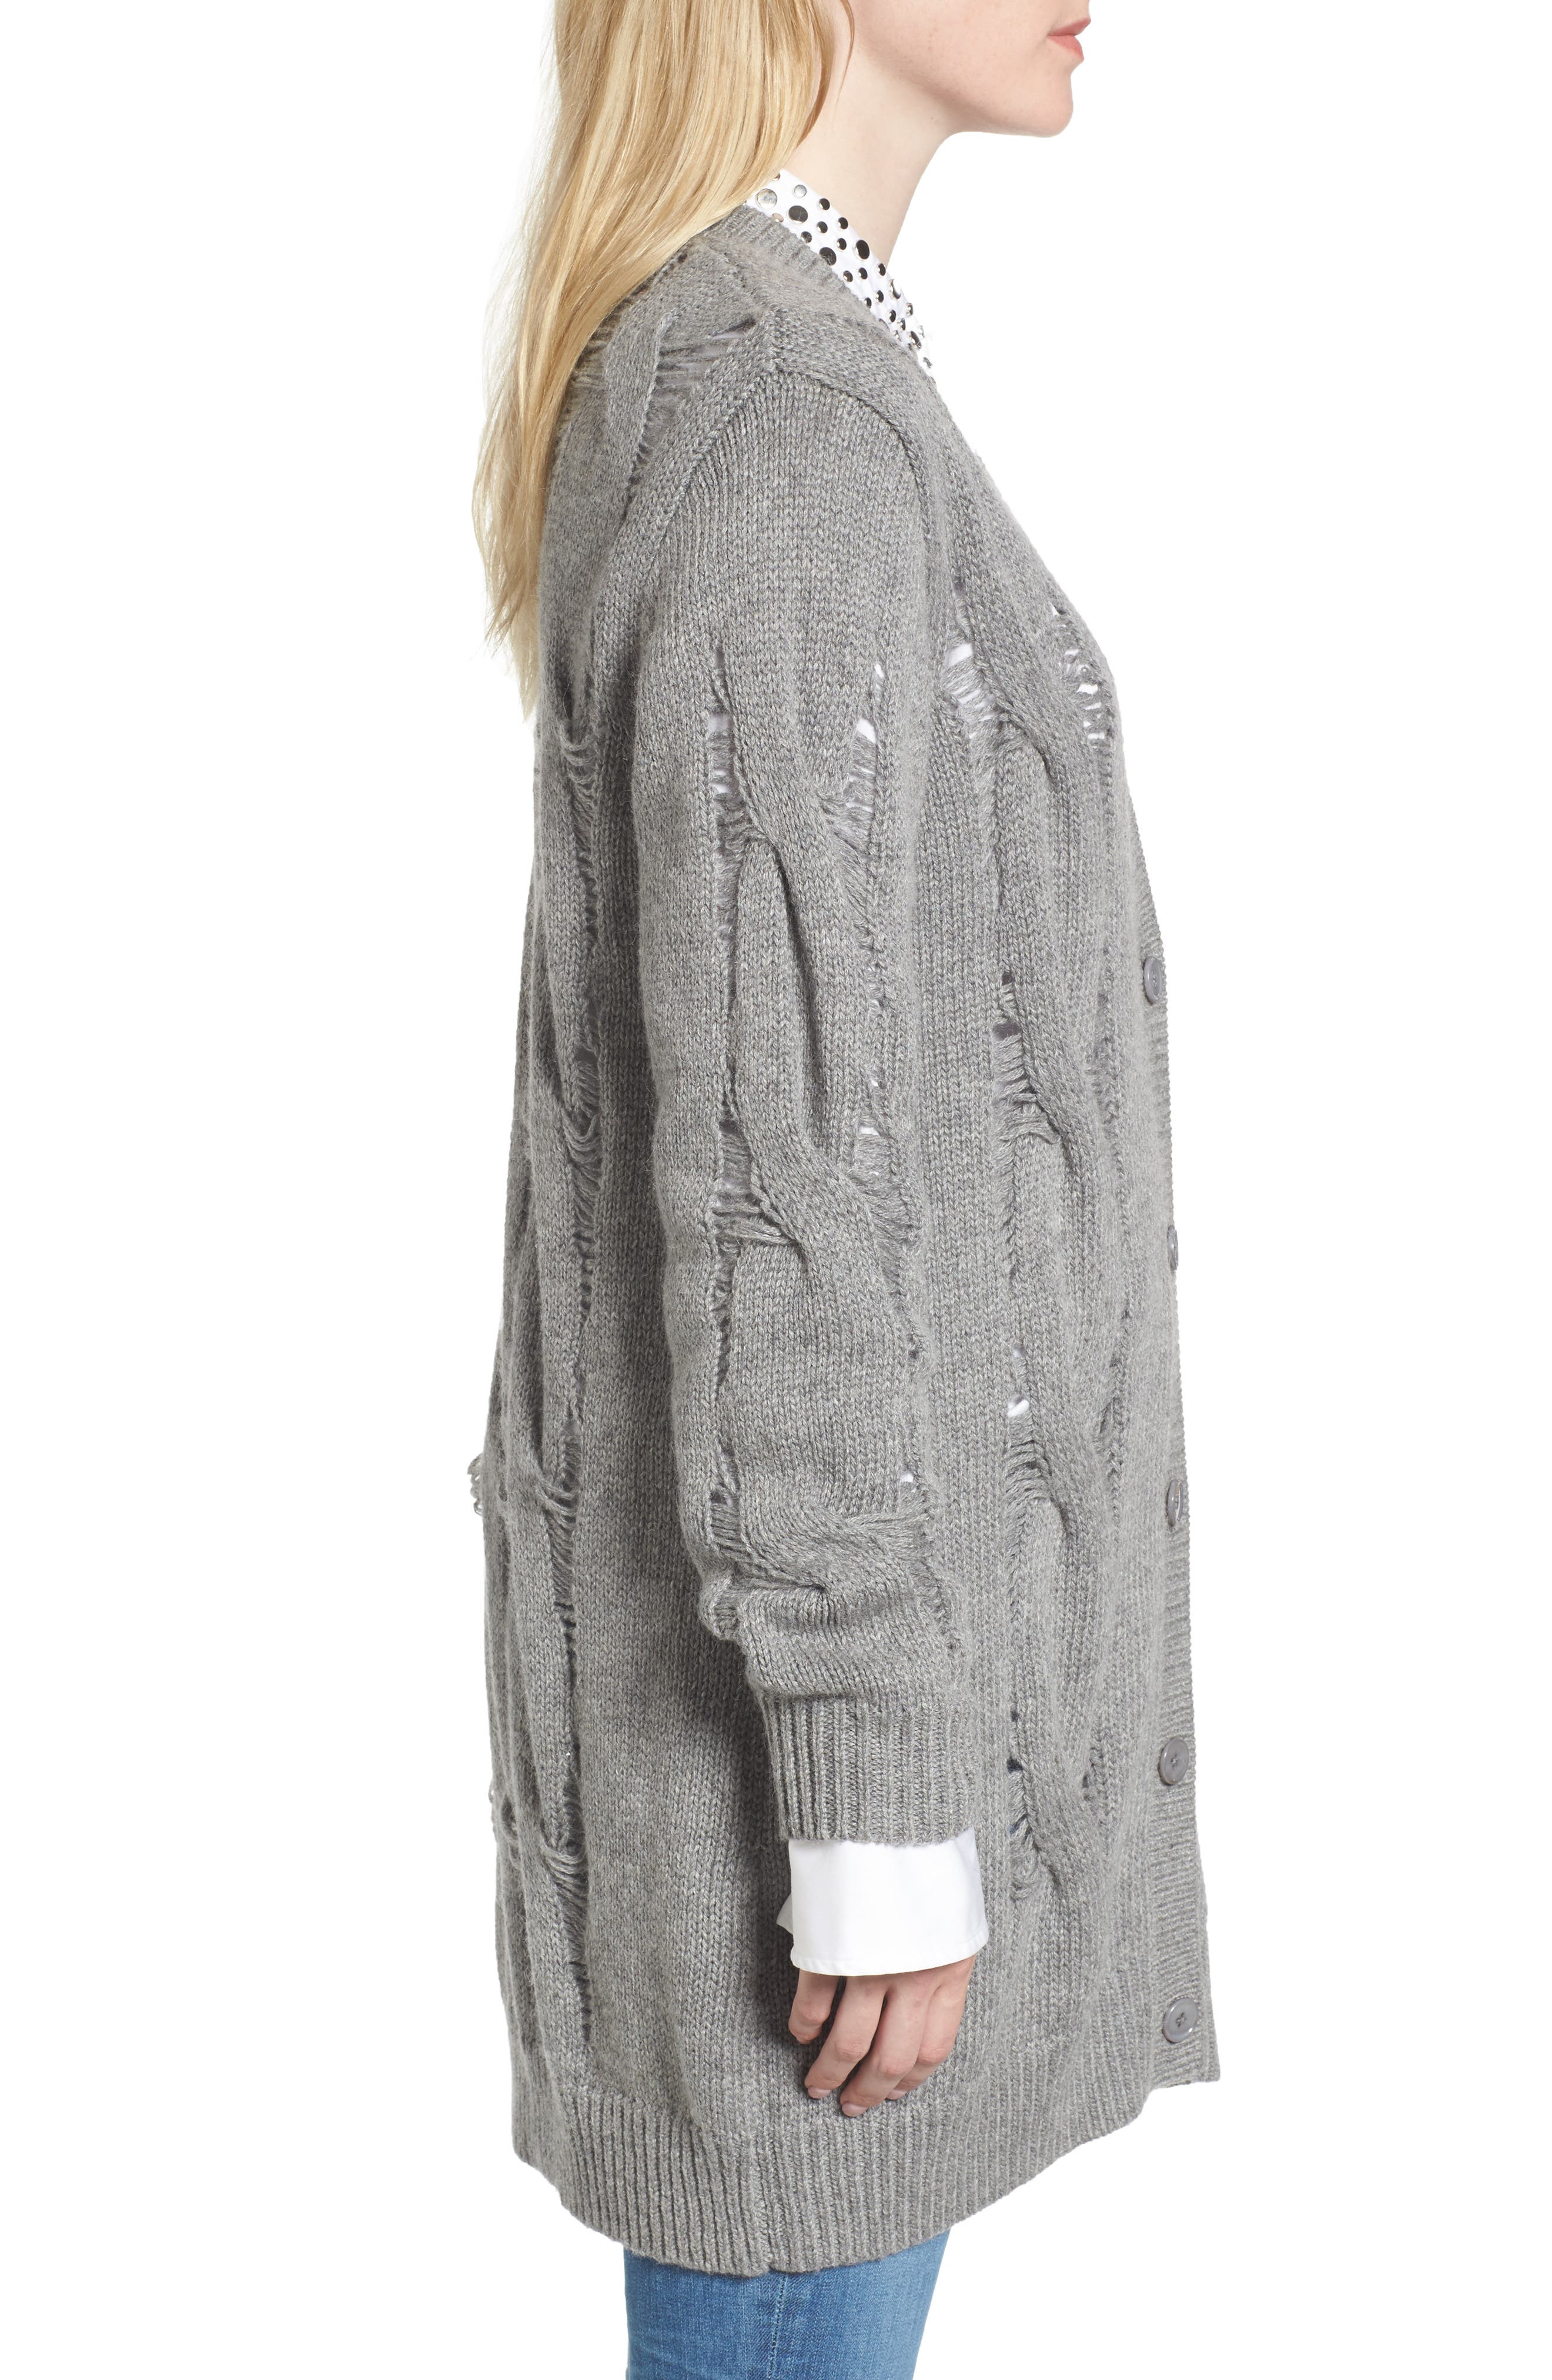 Sandrine Longline Cardigan Sweater,                             Alternate thumbnail 3, color,                             033